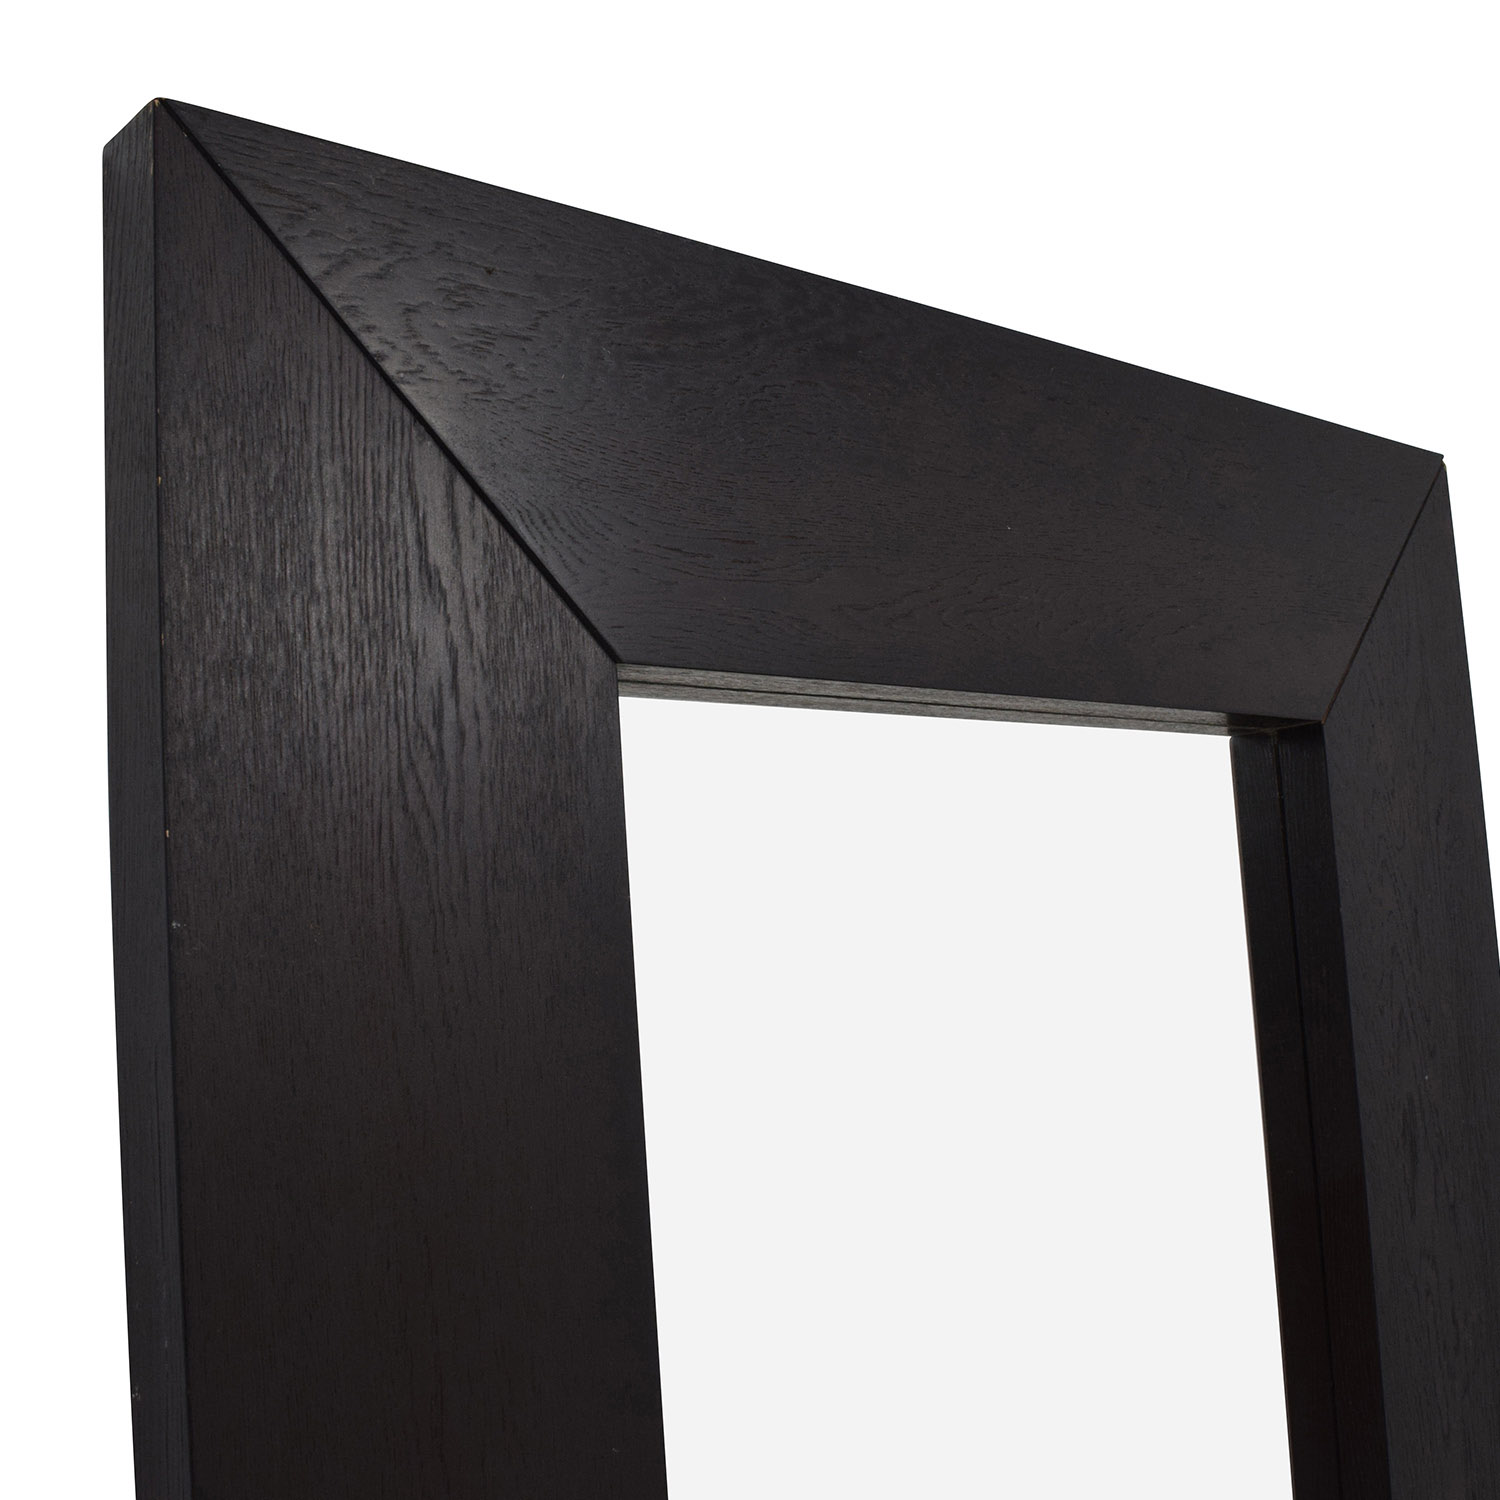 Crate & Barrel Large Standing Mirror sale